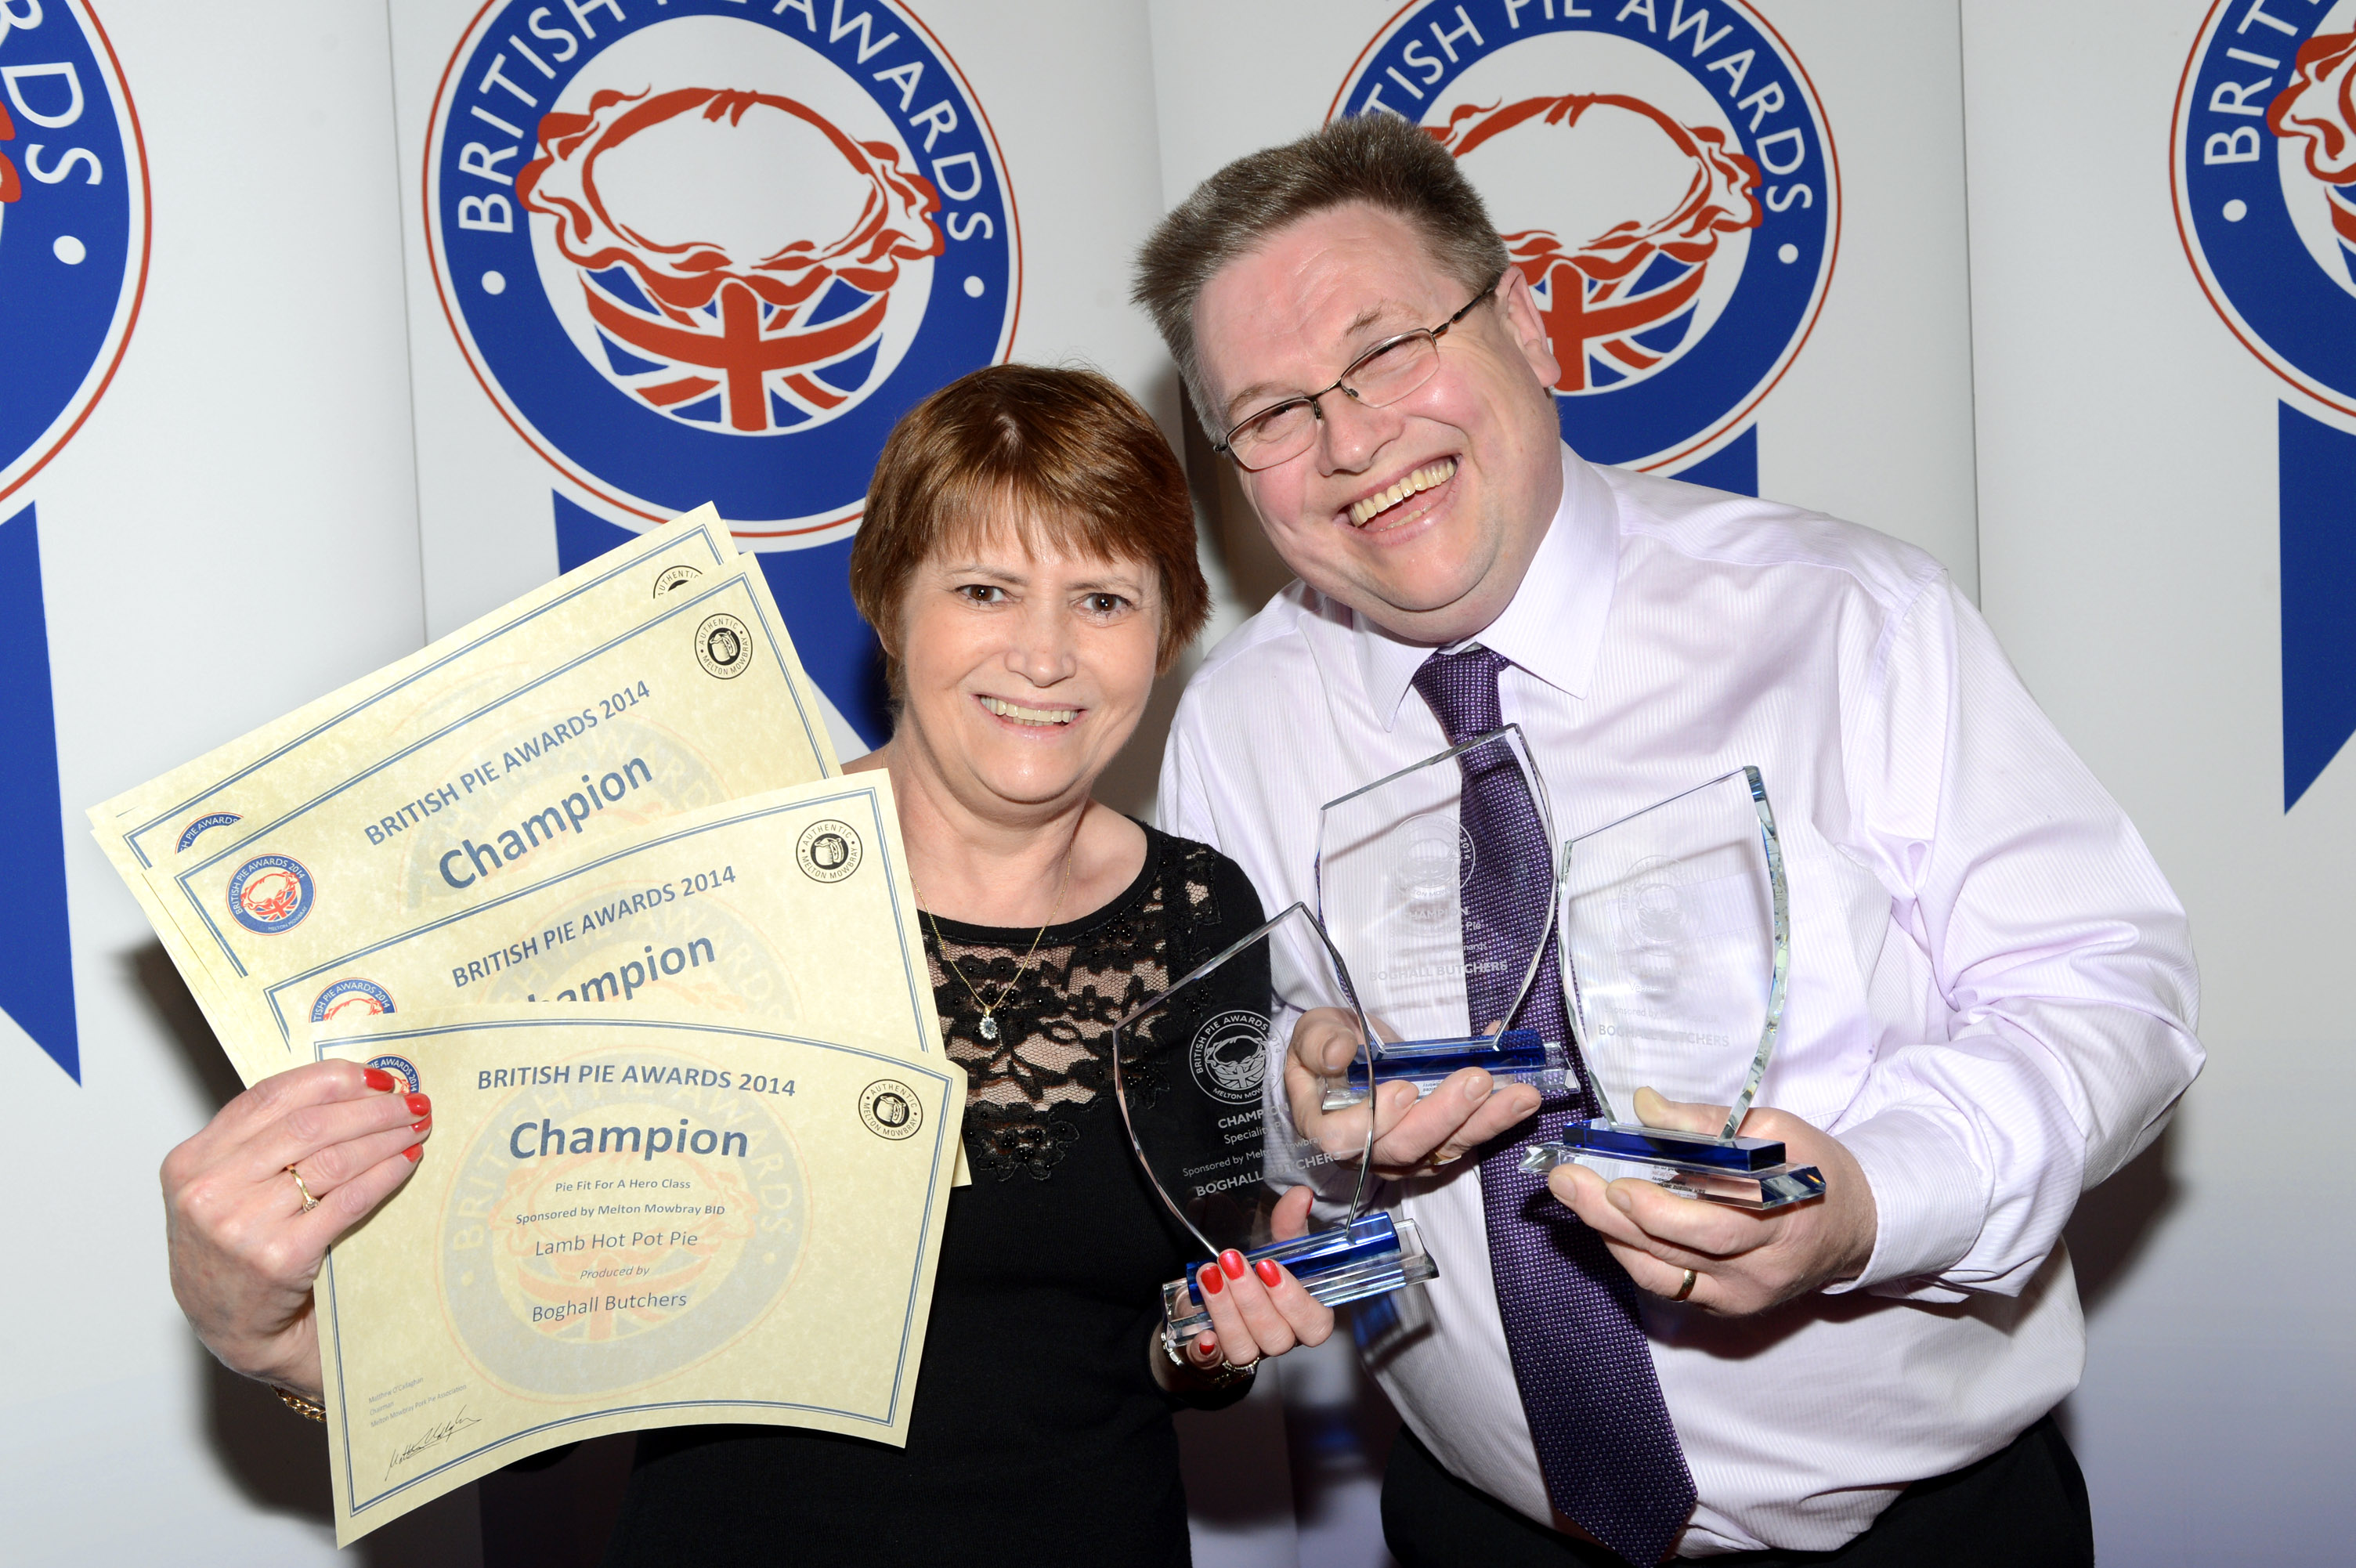 British Pie Awards 2014